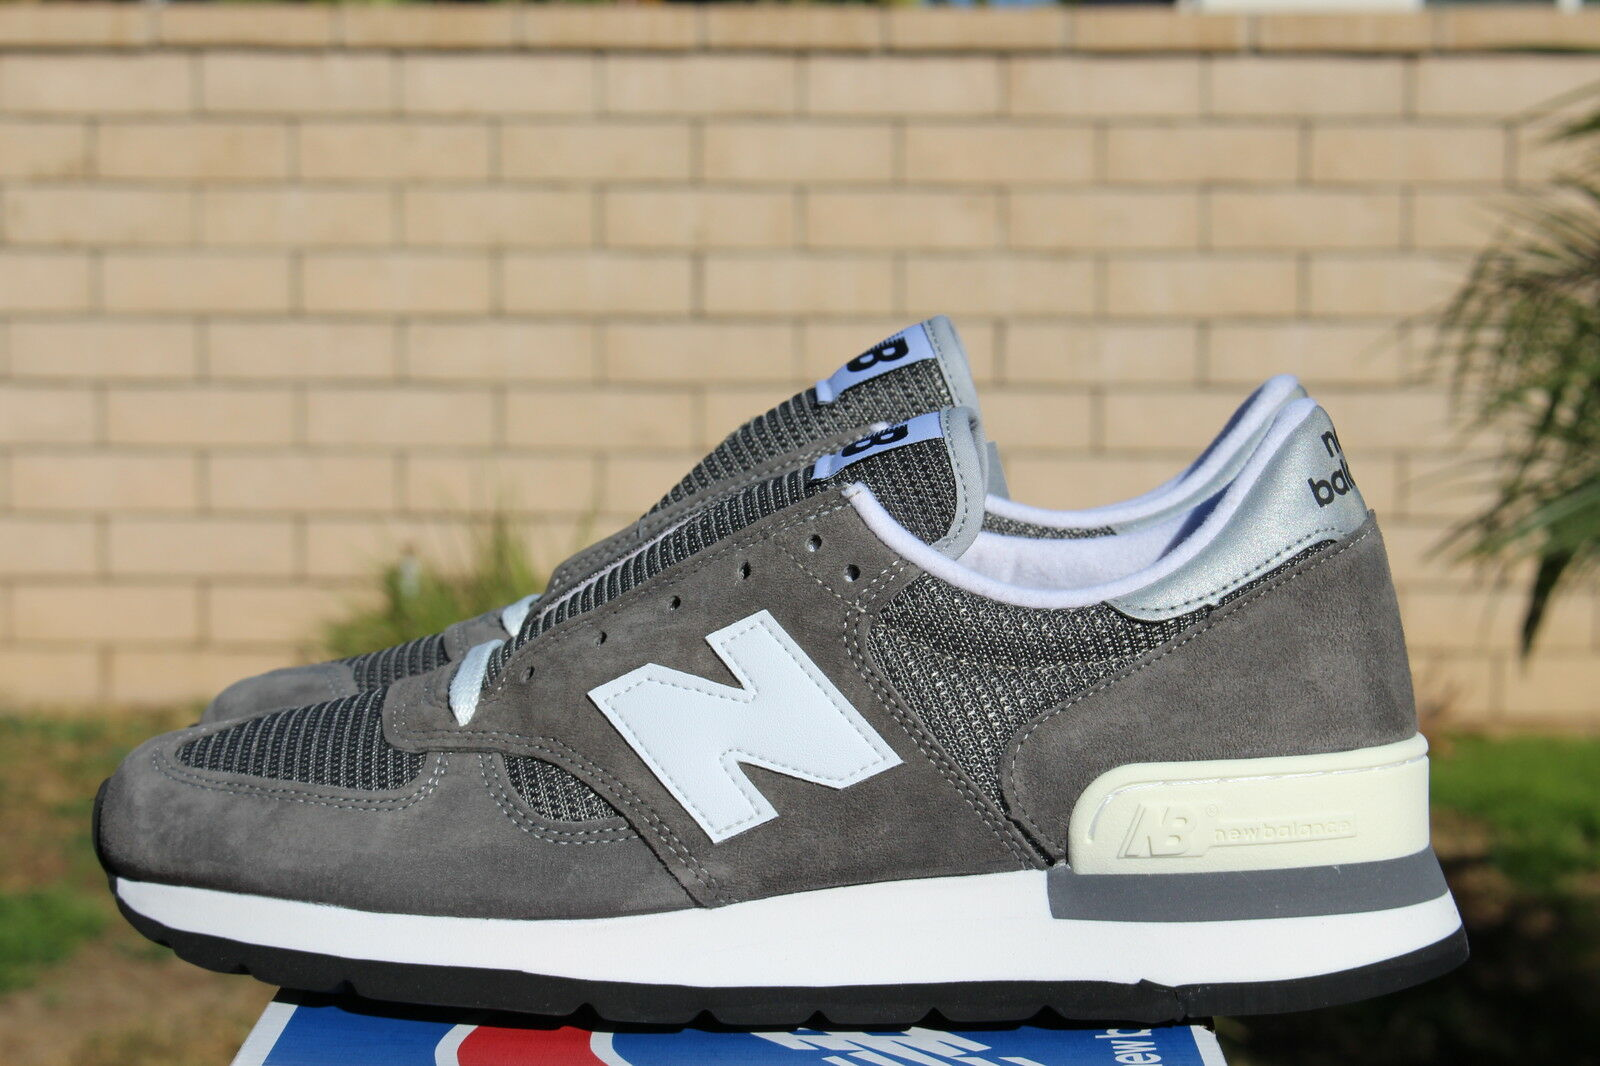 NEW BALANCE 990GRY 30TH ANNIVERSARY 12 GREY M990GRY *ONLY 990 PAIRS MADE RARE*